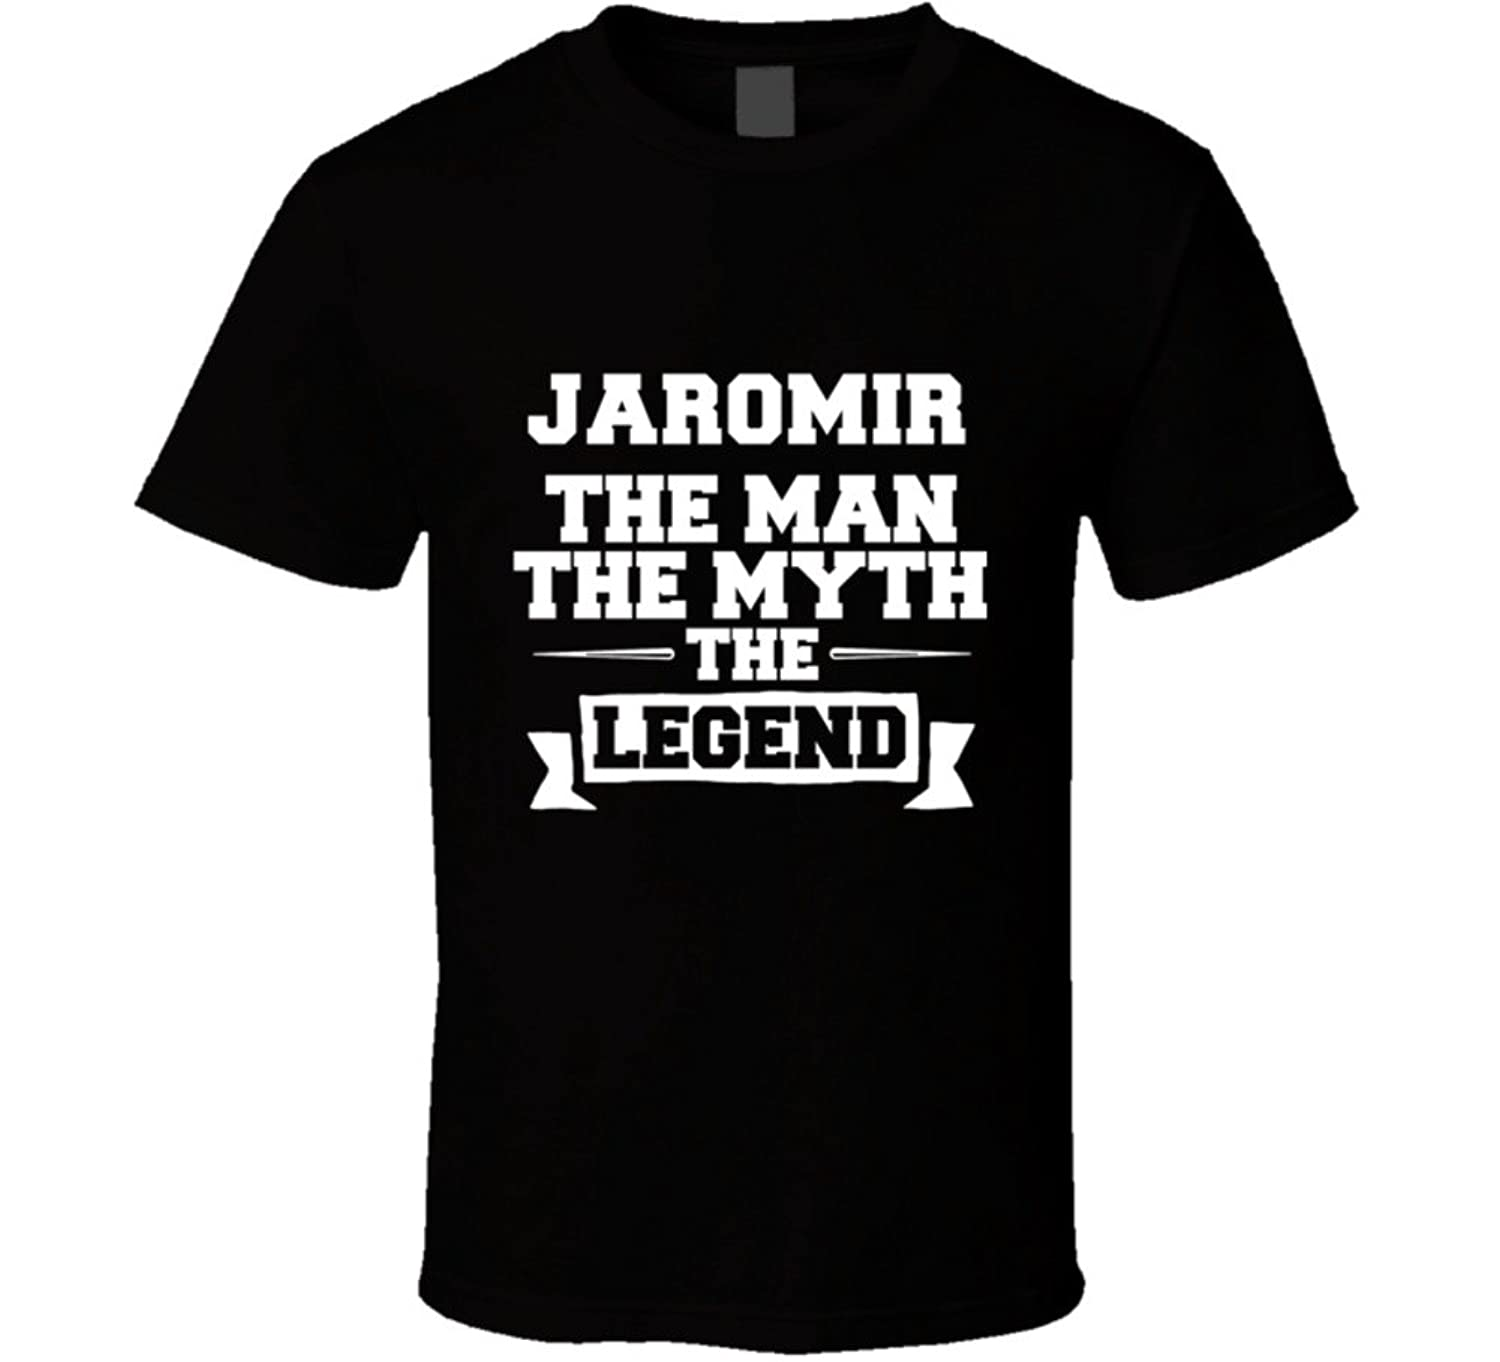 Jaromir - the meaning of the name. What does it say